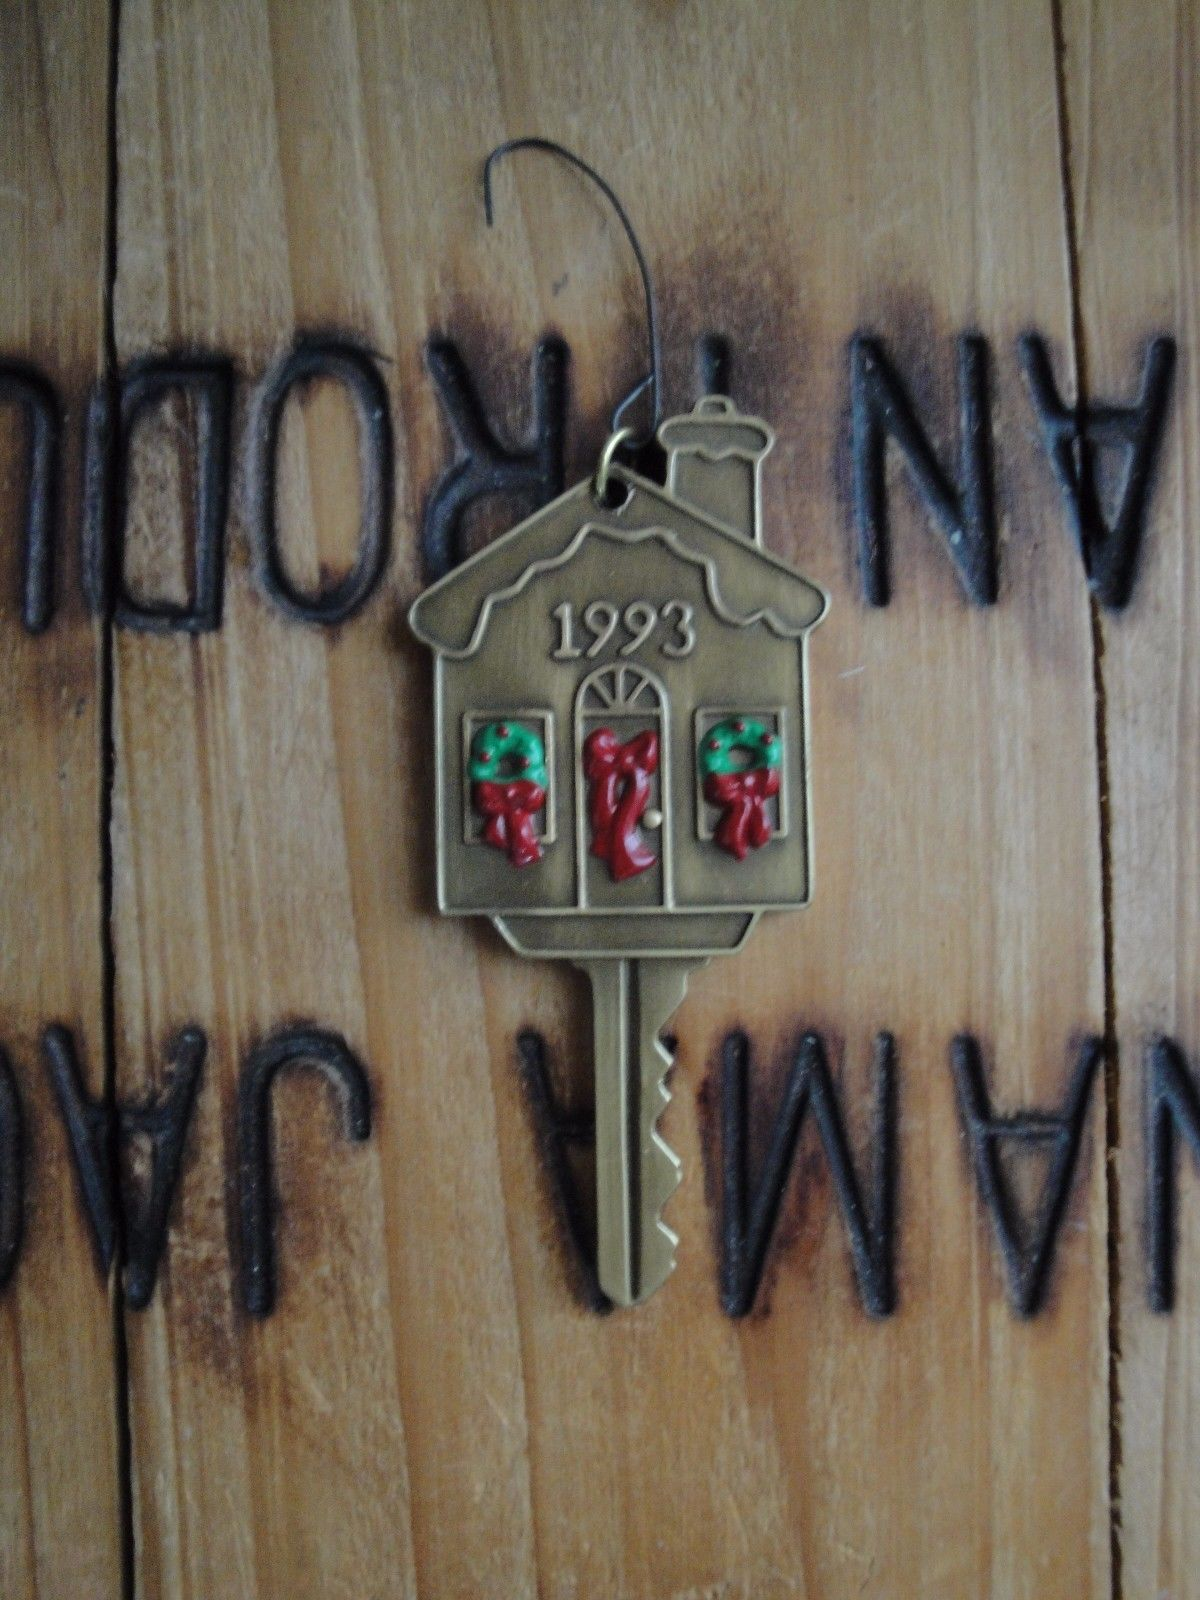 Vtg Hallmark Keepsake 1993 New Home Key Ornament Christmas House Keys Tree